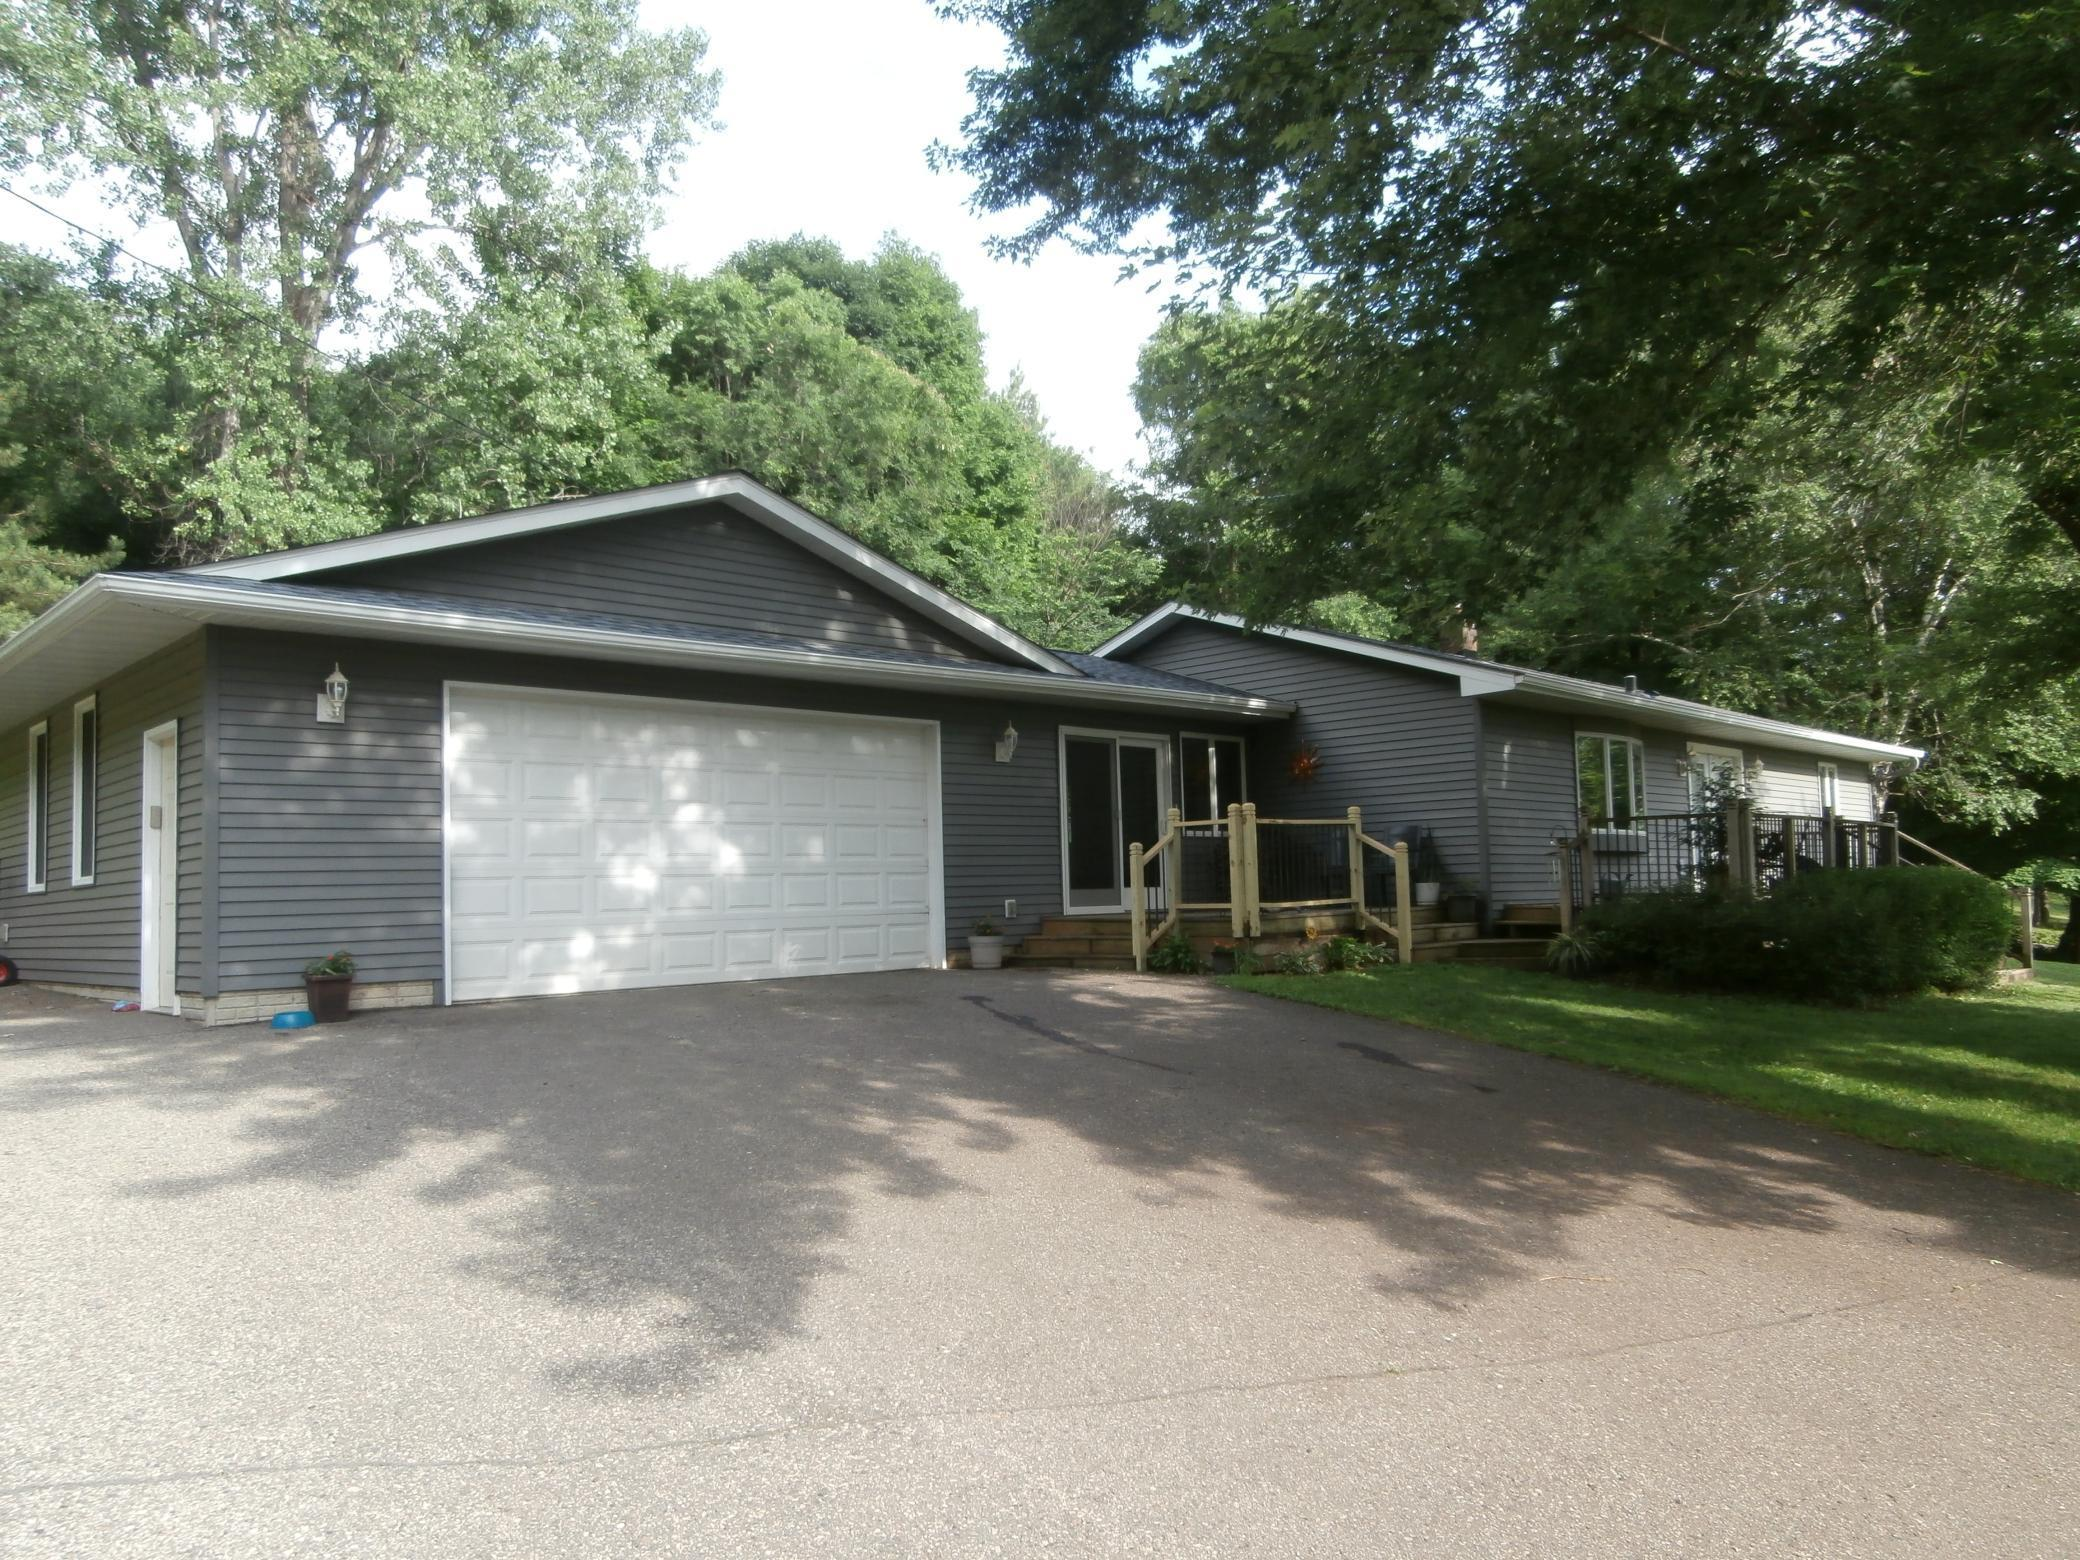 443 Valleyview Property Photo - Kinnickinnic Twp, WI real estate listing